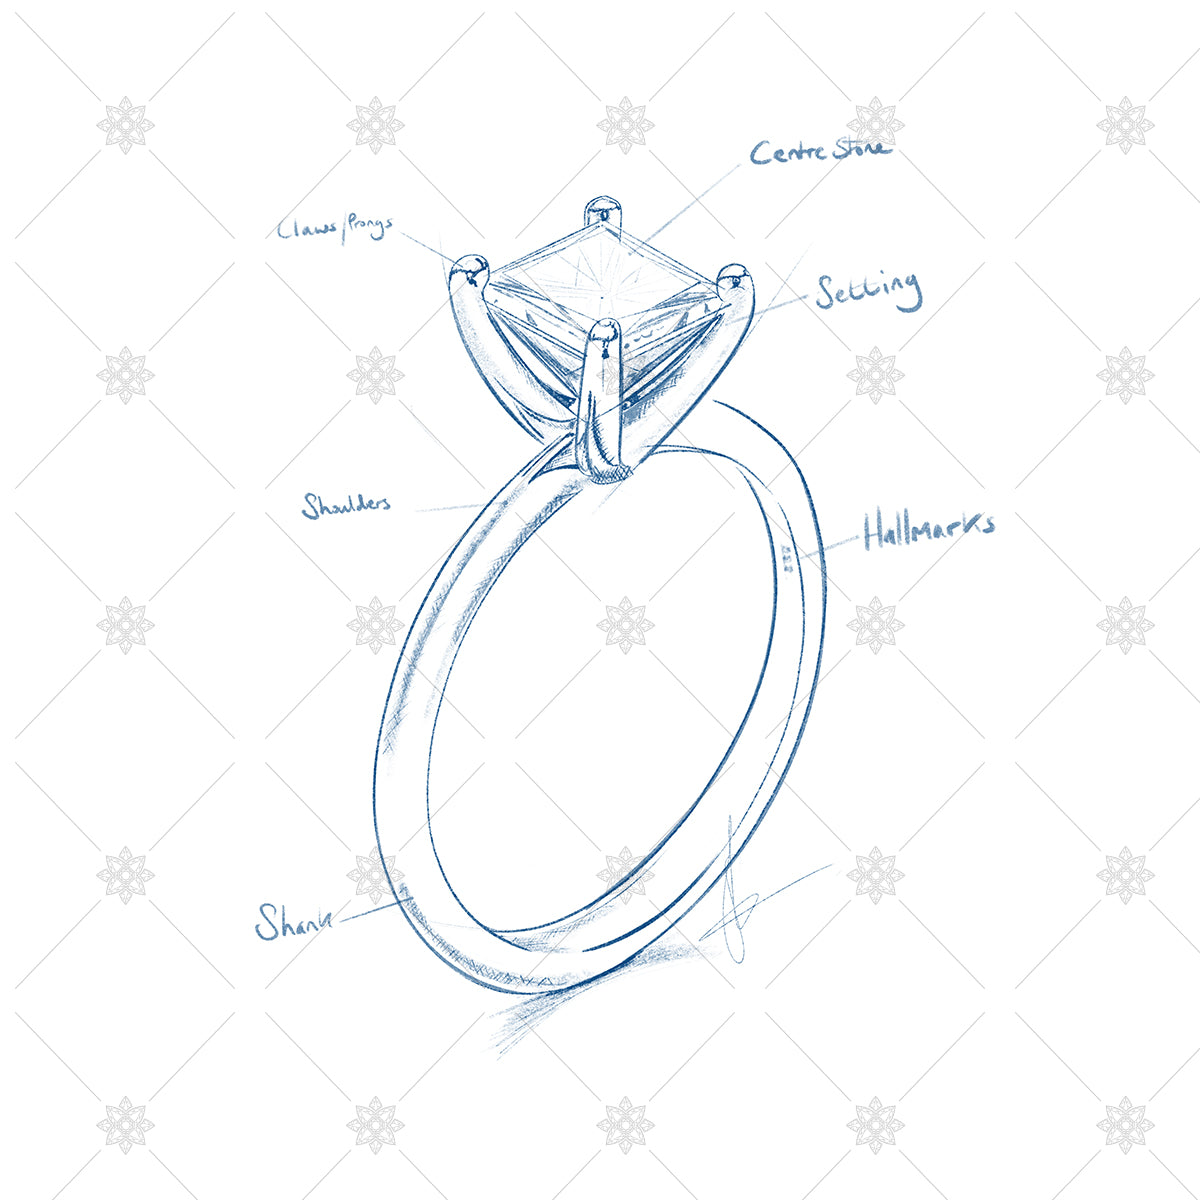 jewellery sketching and drawing - ring sketch